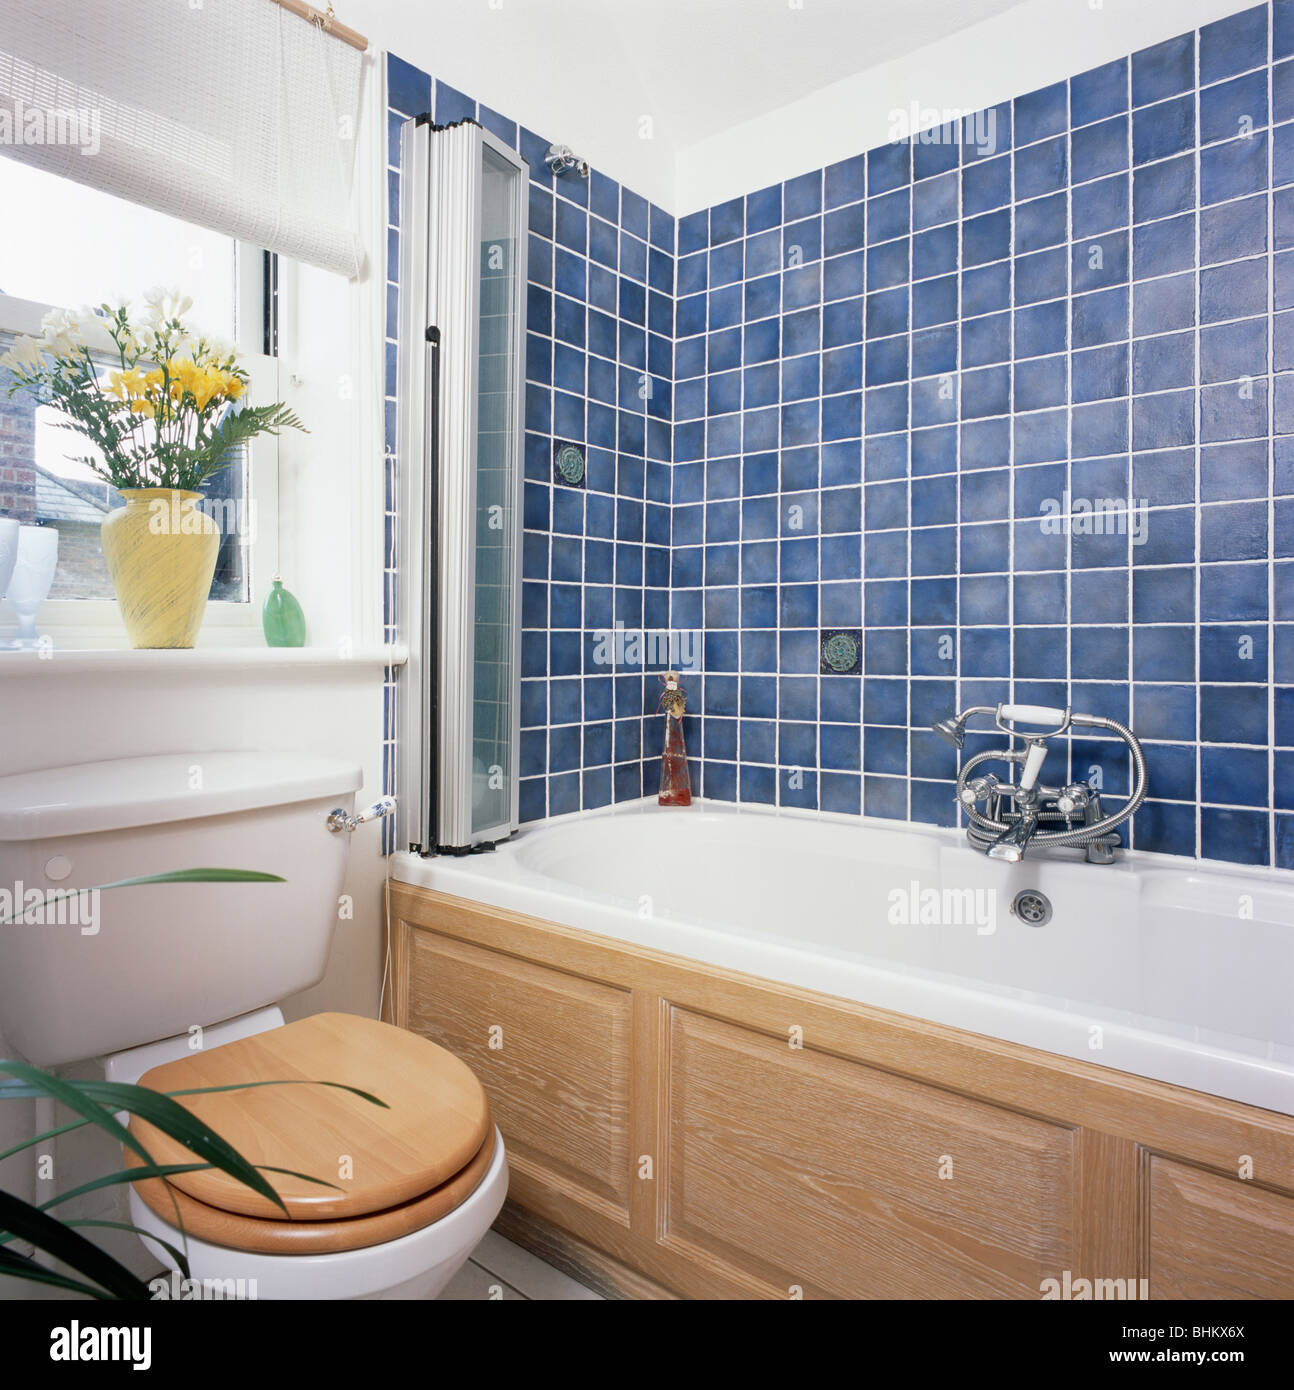 Interiors Economy Bathrooms Baths Stock Photos & Interiors Economy ...